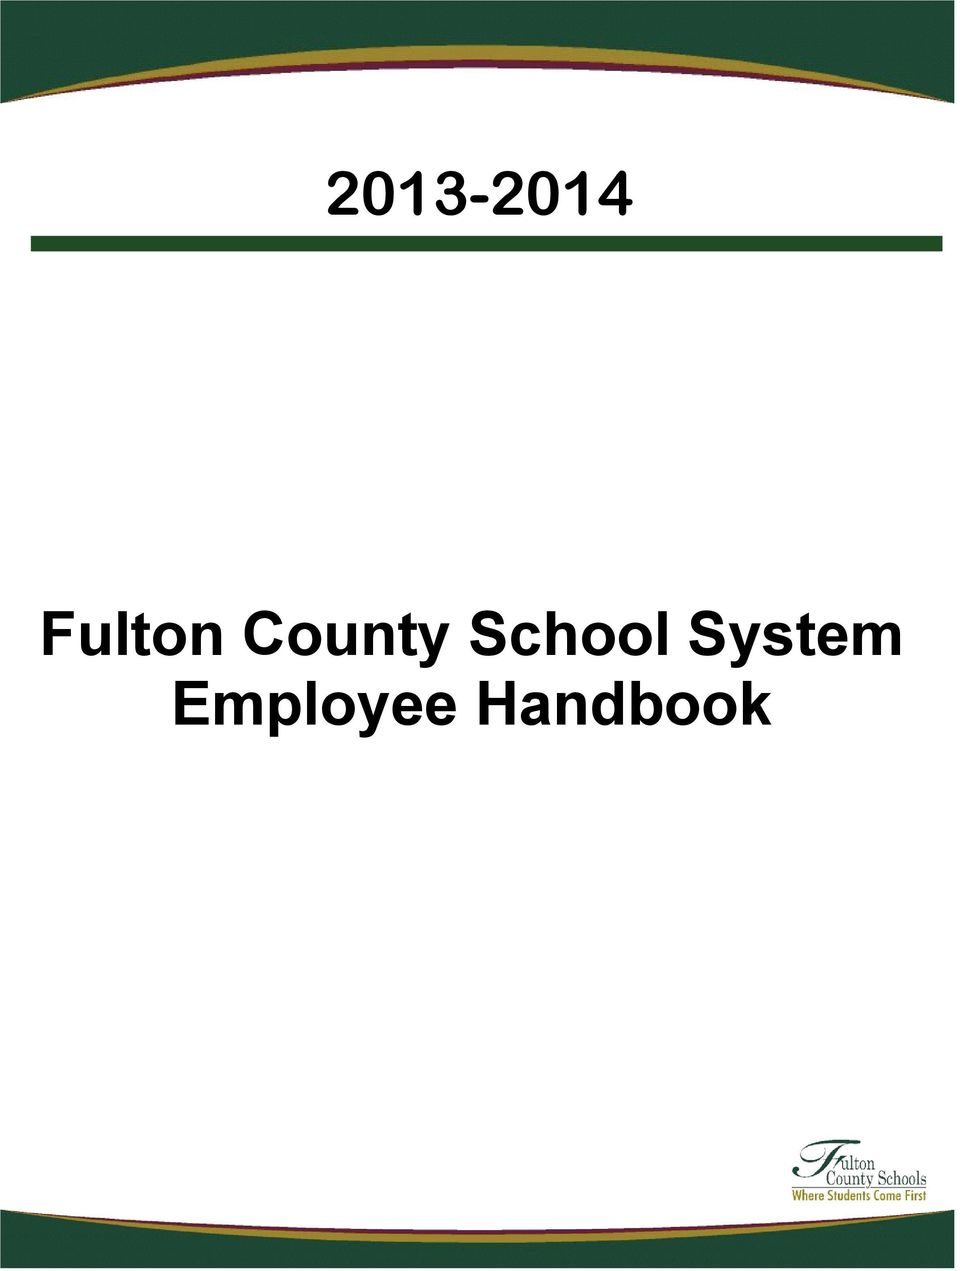 2 Fulton County School System Mission Our Mission is to educate every  student to be a responsible, productive citizen. Fulton County School  System Vision ...